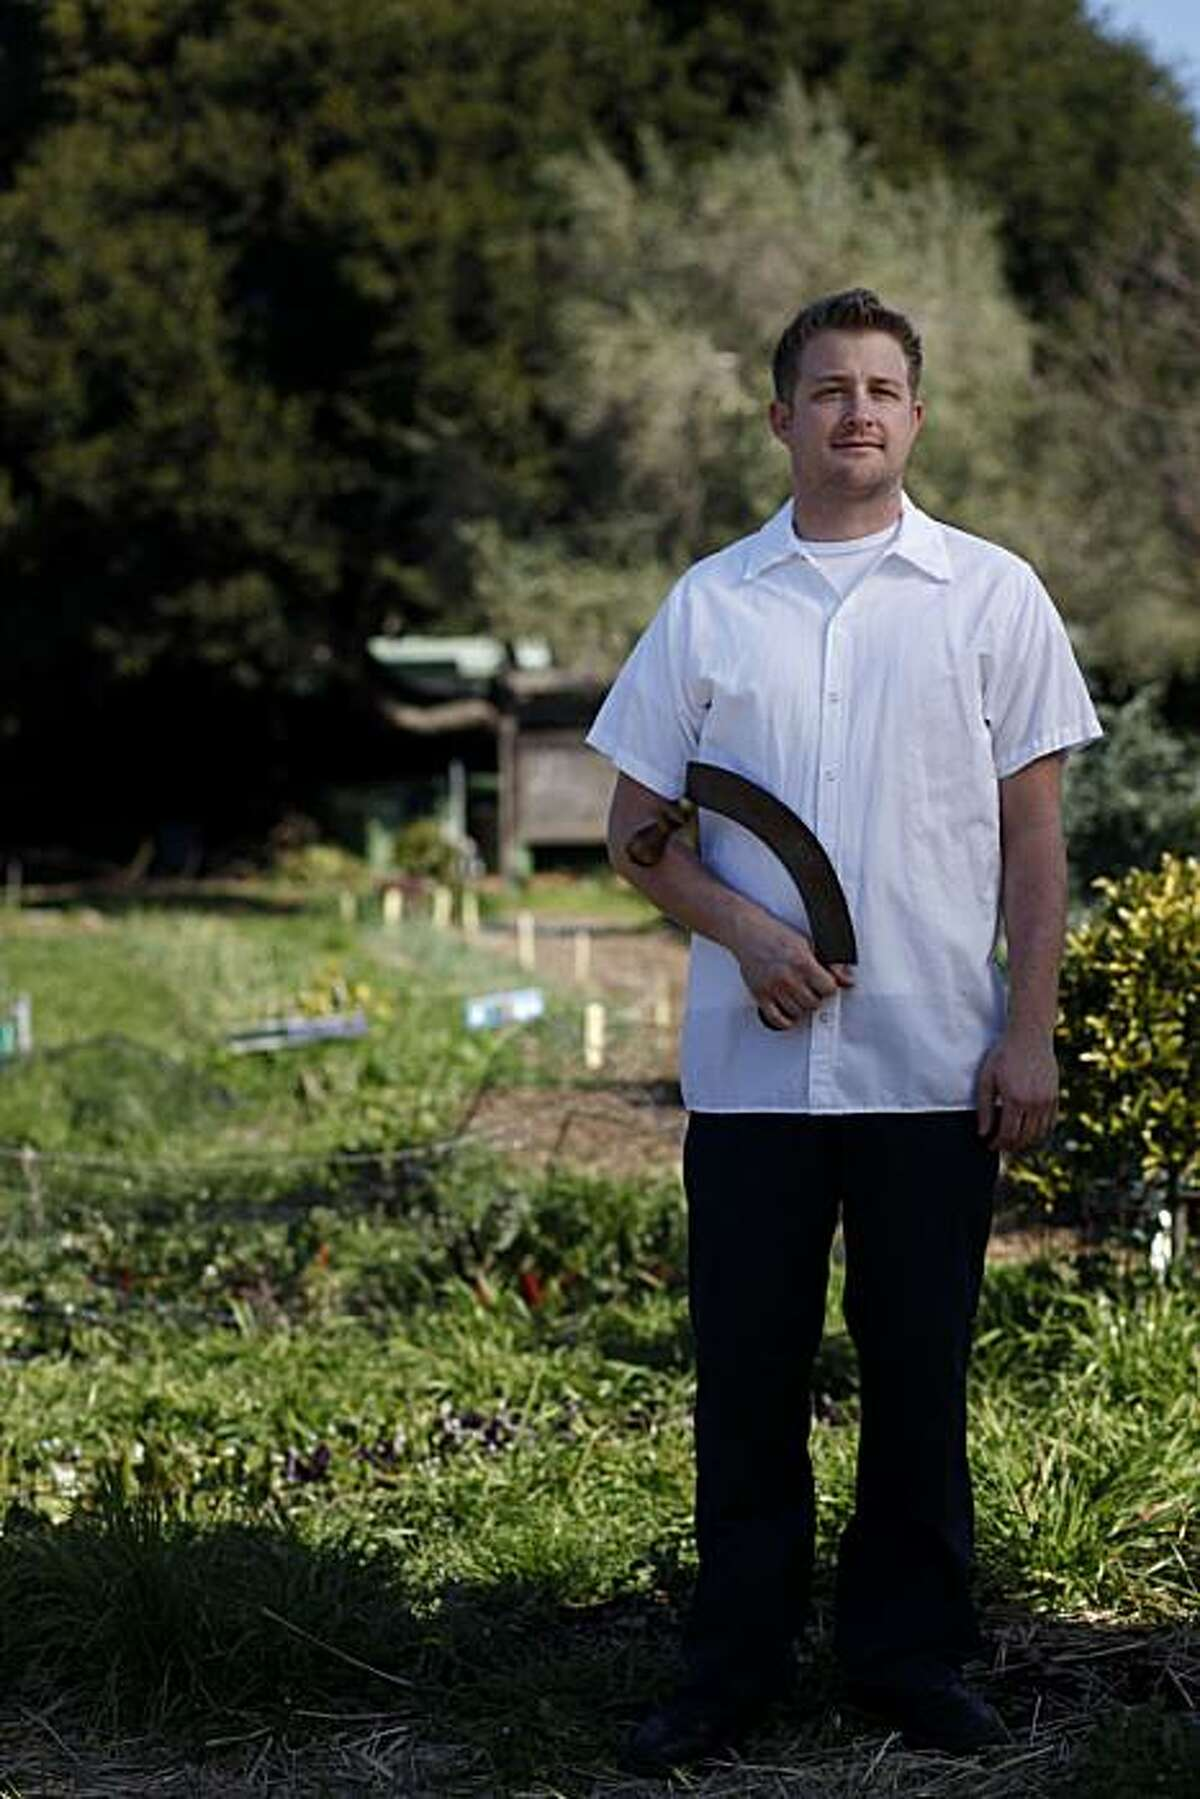 Curtis Di Fede, chef at Oenotri in Napa, one of six bay area rising star chefs stands for a portrait at the Edible Schoolyard on the Martin Luther King Middle School campus on Tuesday Feb. 22, 2011 in Berkeley, Calif.